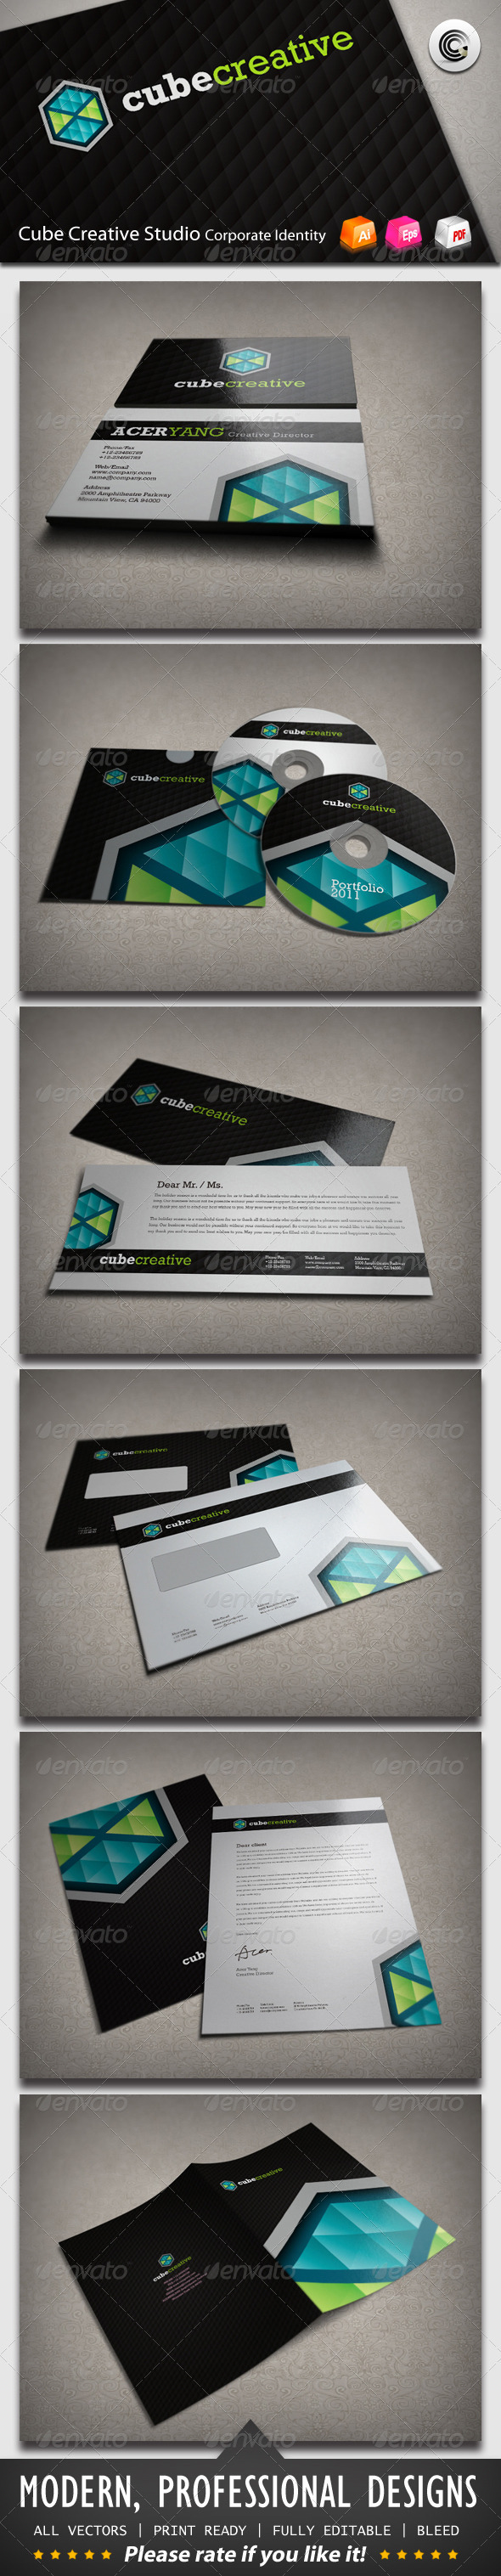 Cube Creative Corporate Identity - Stationery Print Templates